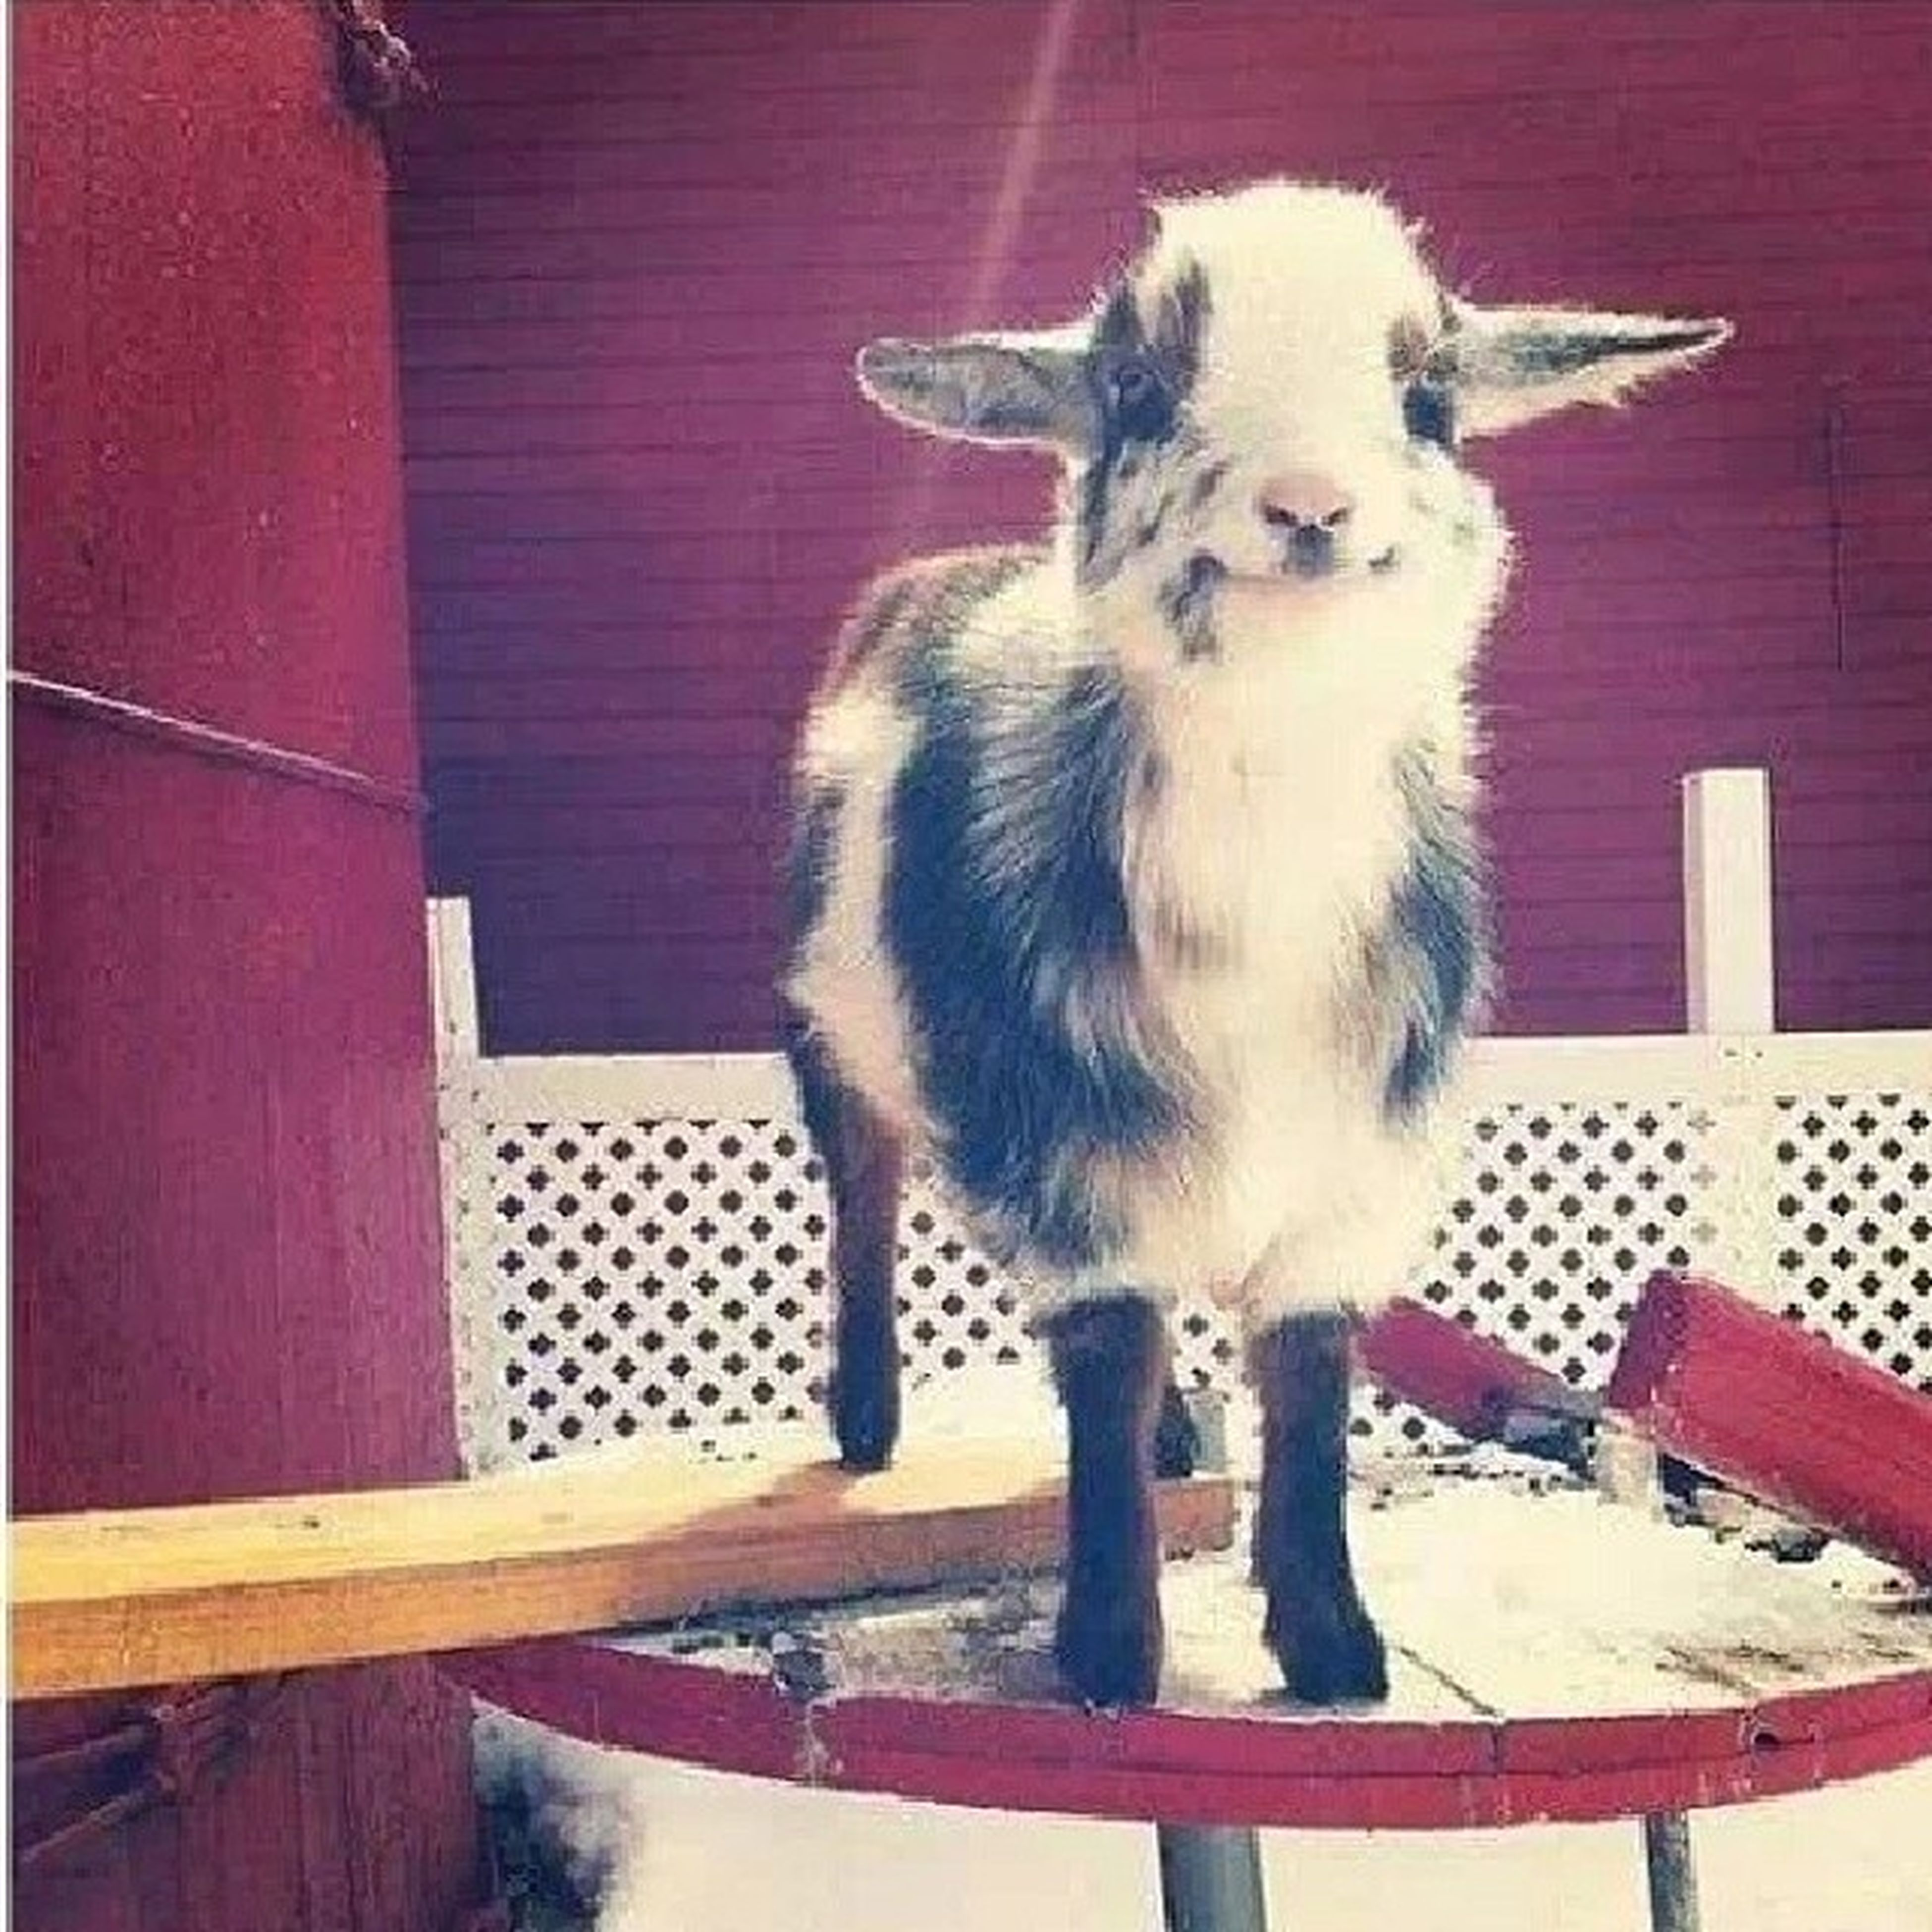 This cute little goat makes me smile. Adorable IWant FuturePet JustWannaPokeIt cute